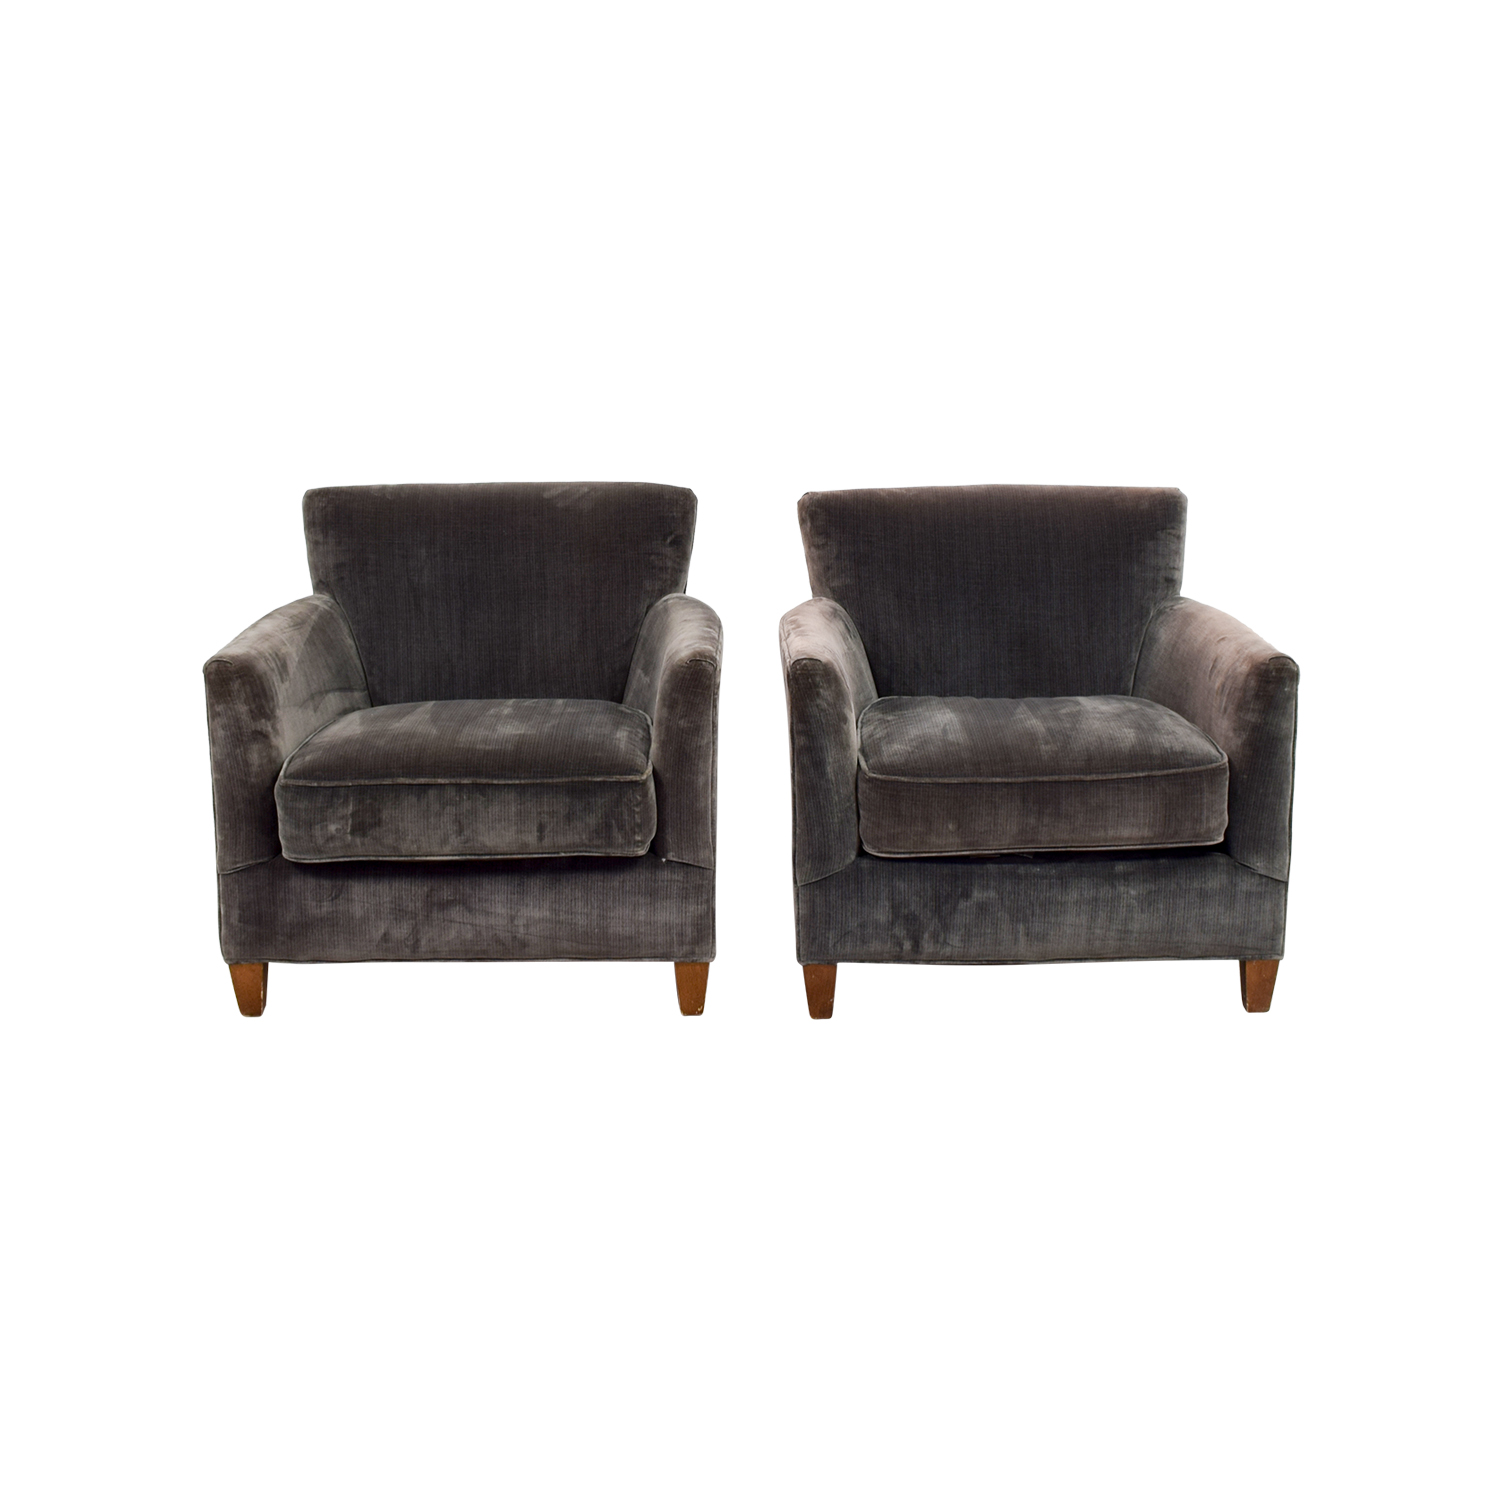 47% OFF Lee Lee Dark Green Velvet Accent Chairs Chairs